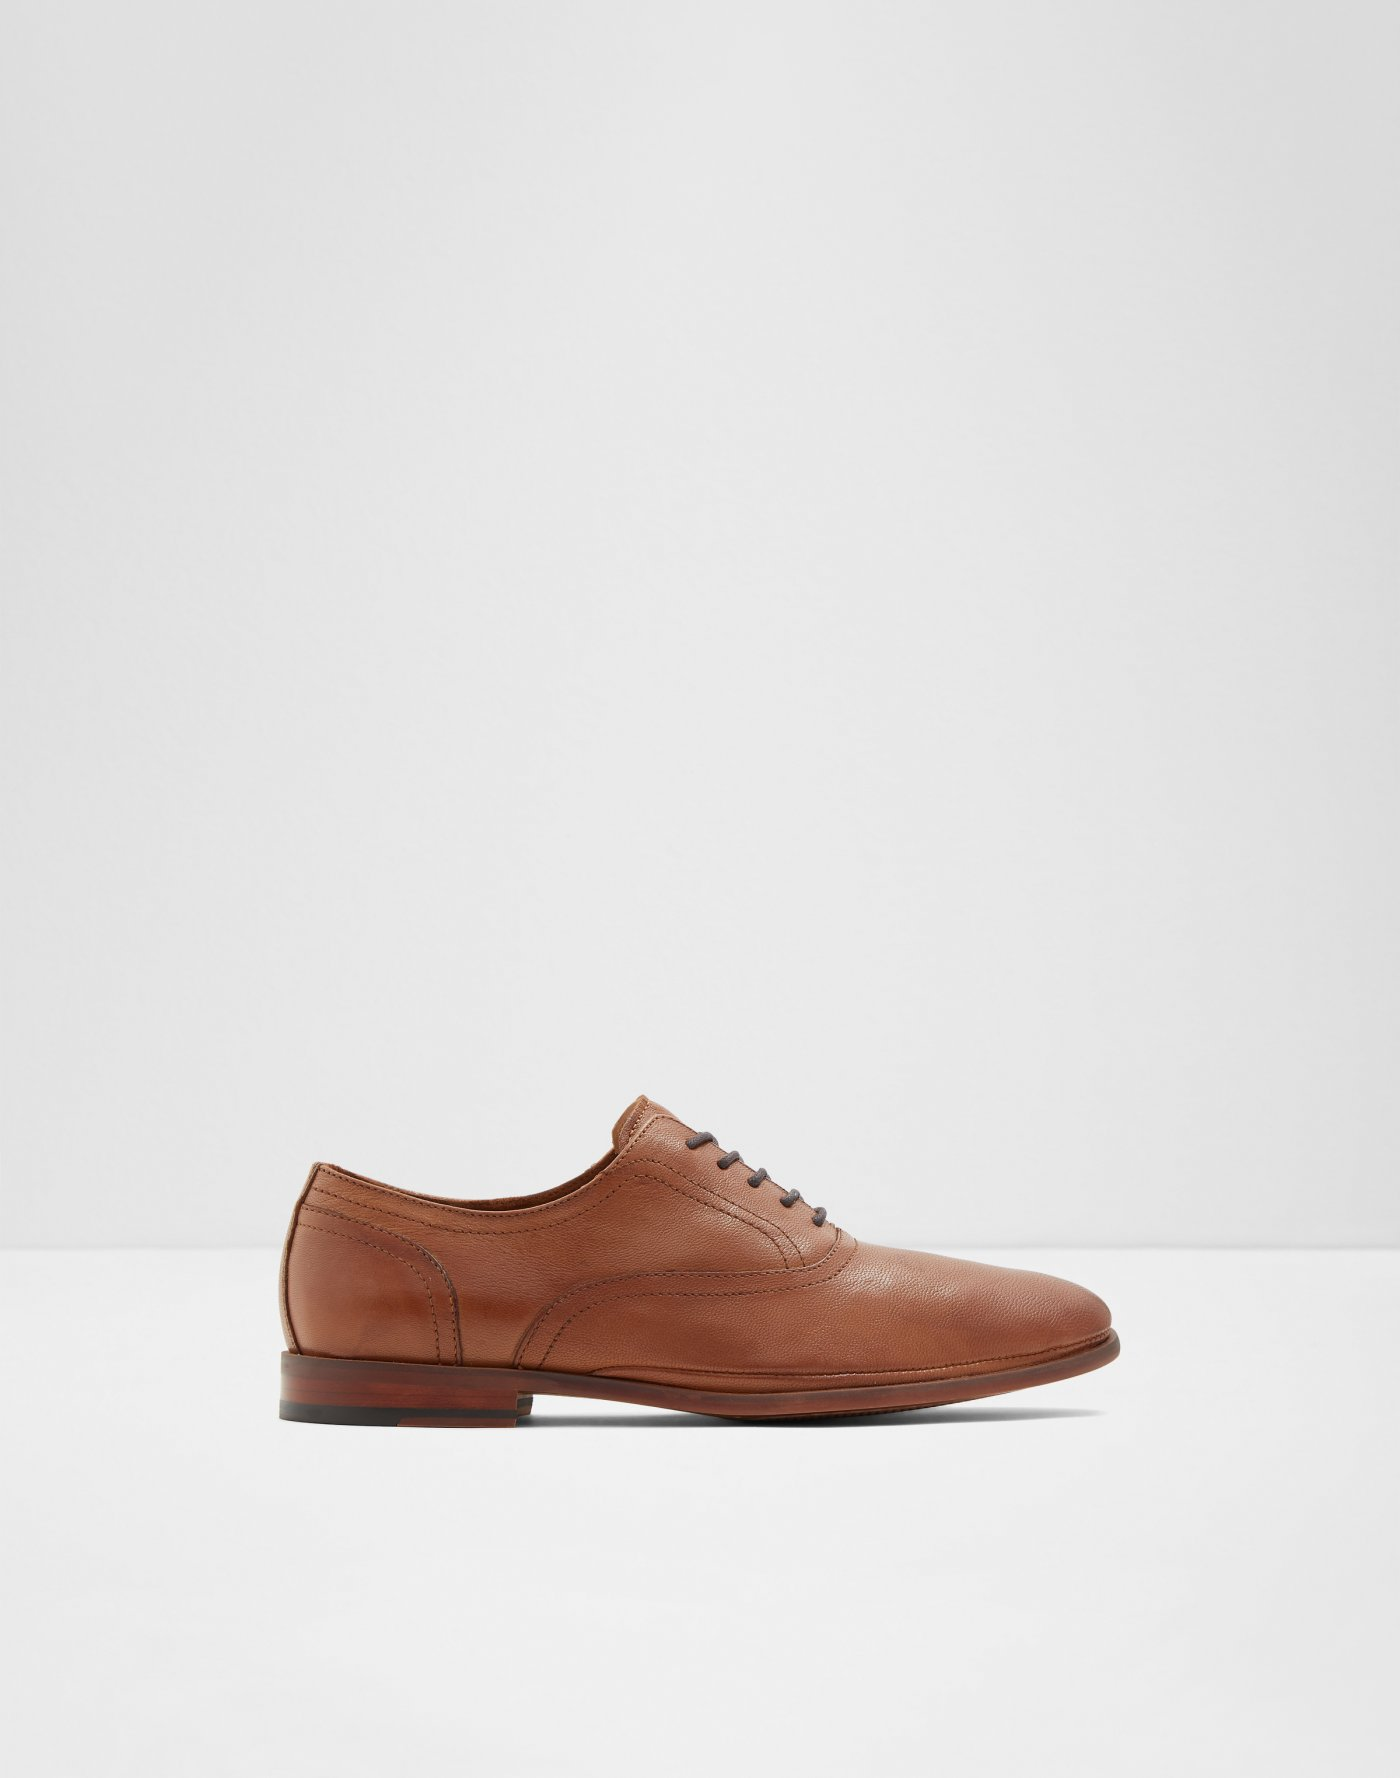 5200ed8c982 All Men's Sales | Shoes, Accessories And Wallets | ALDO US ...